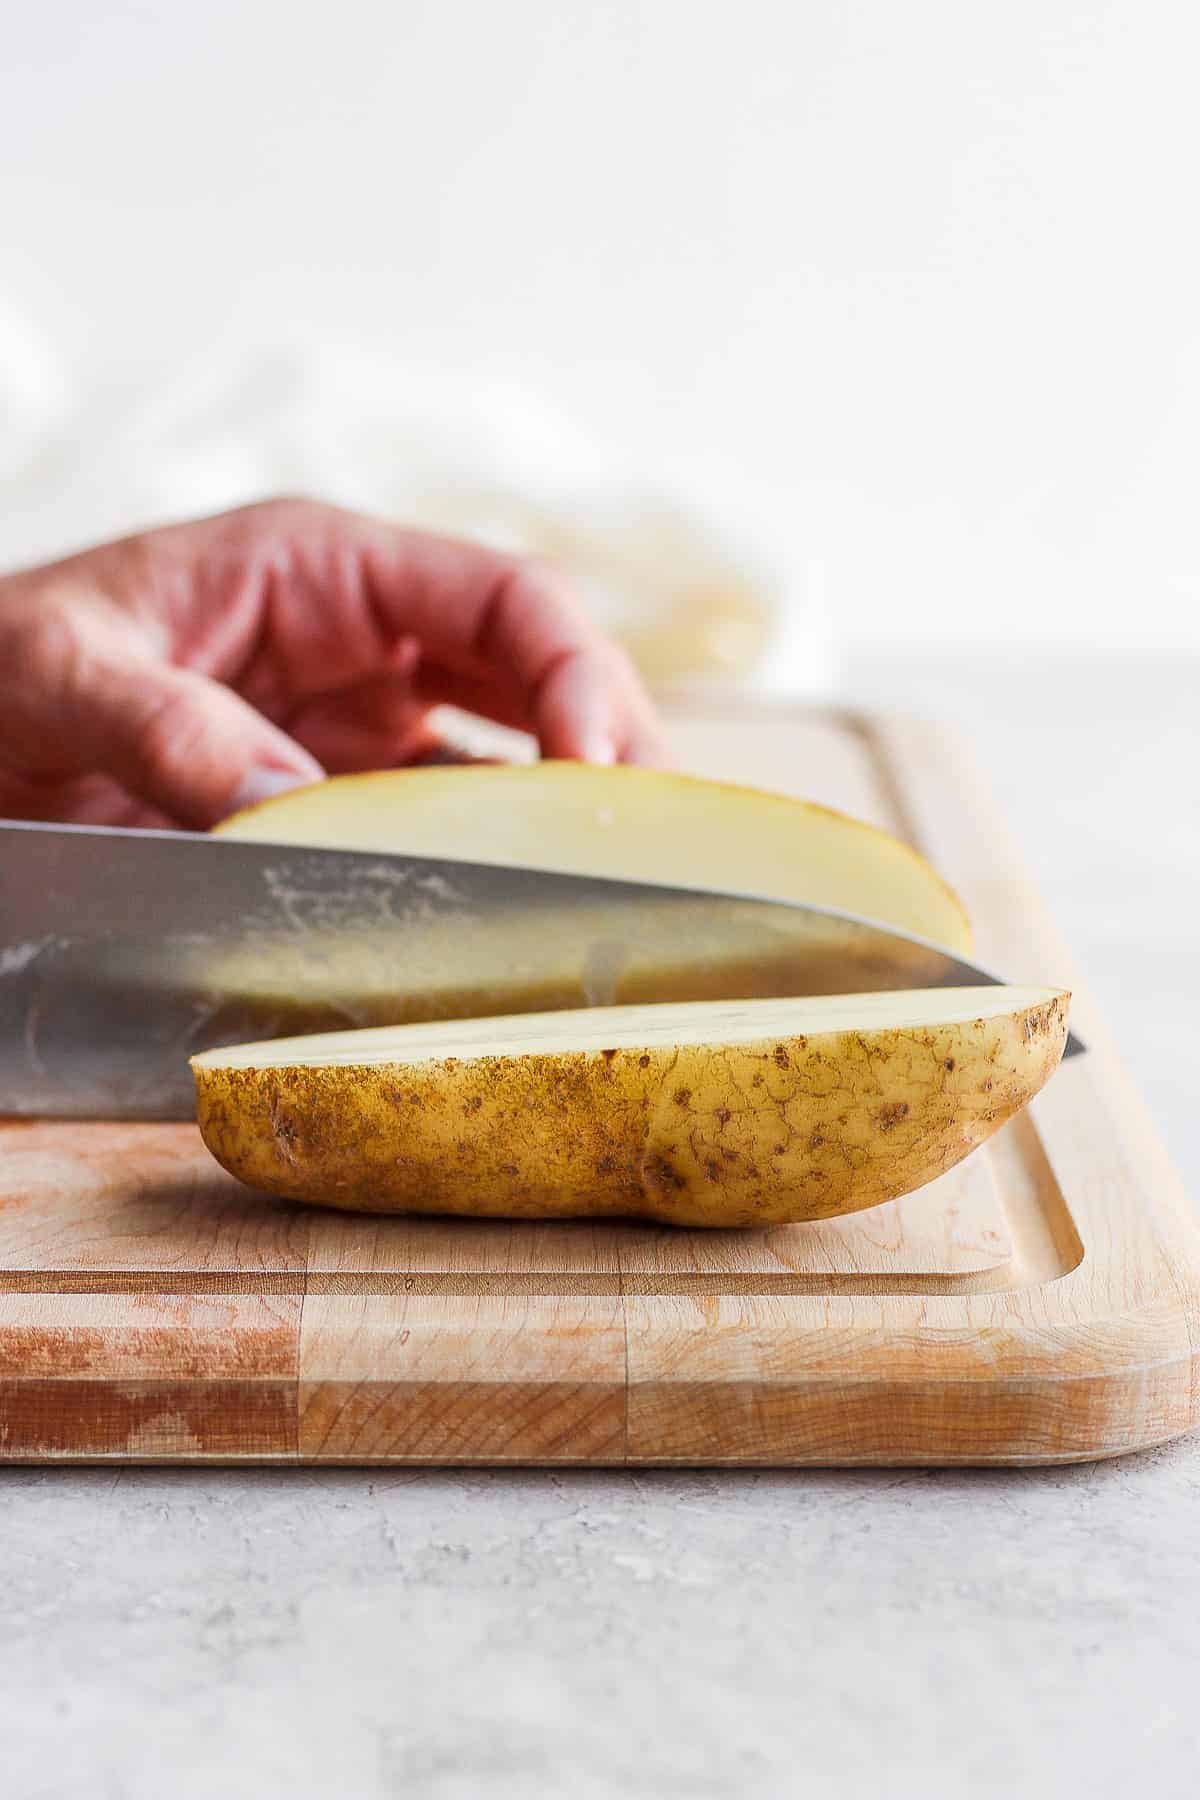 Cutting board with large potato being cut